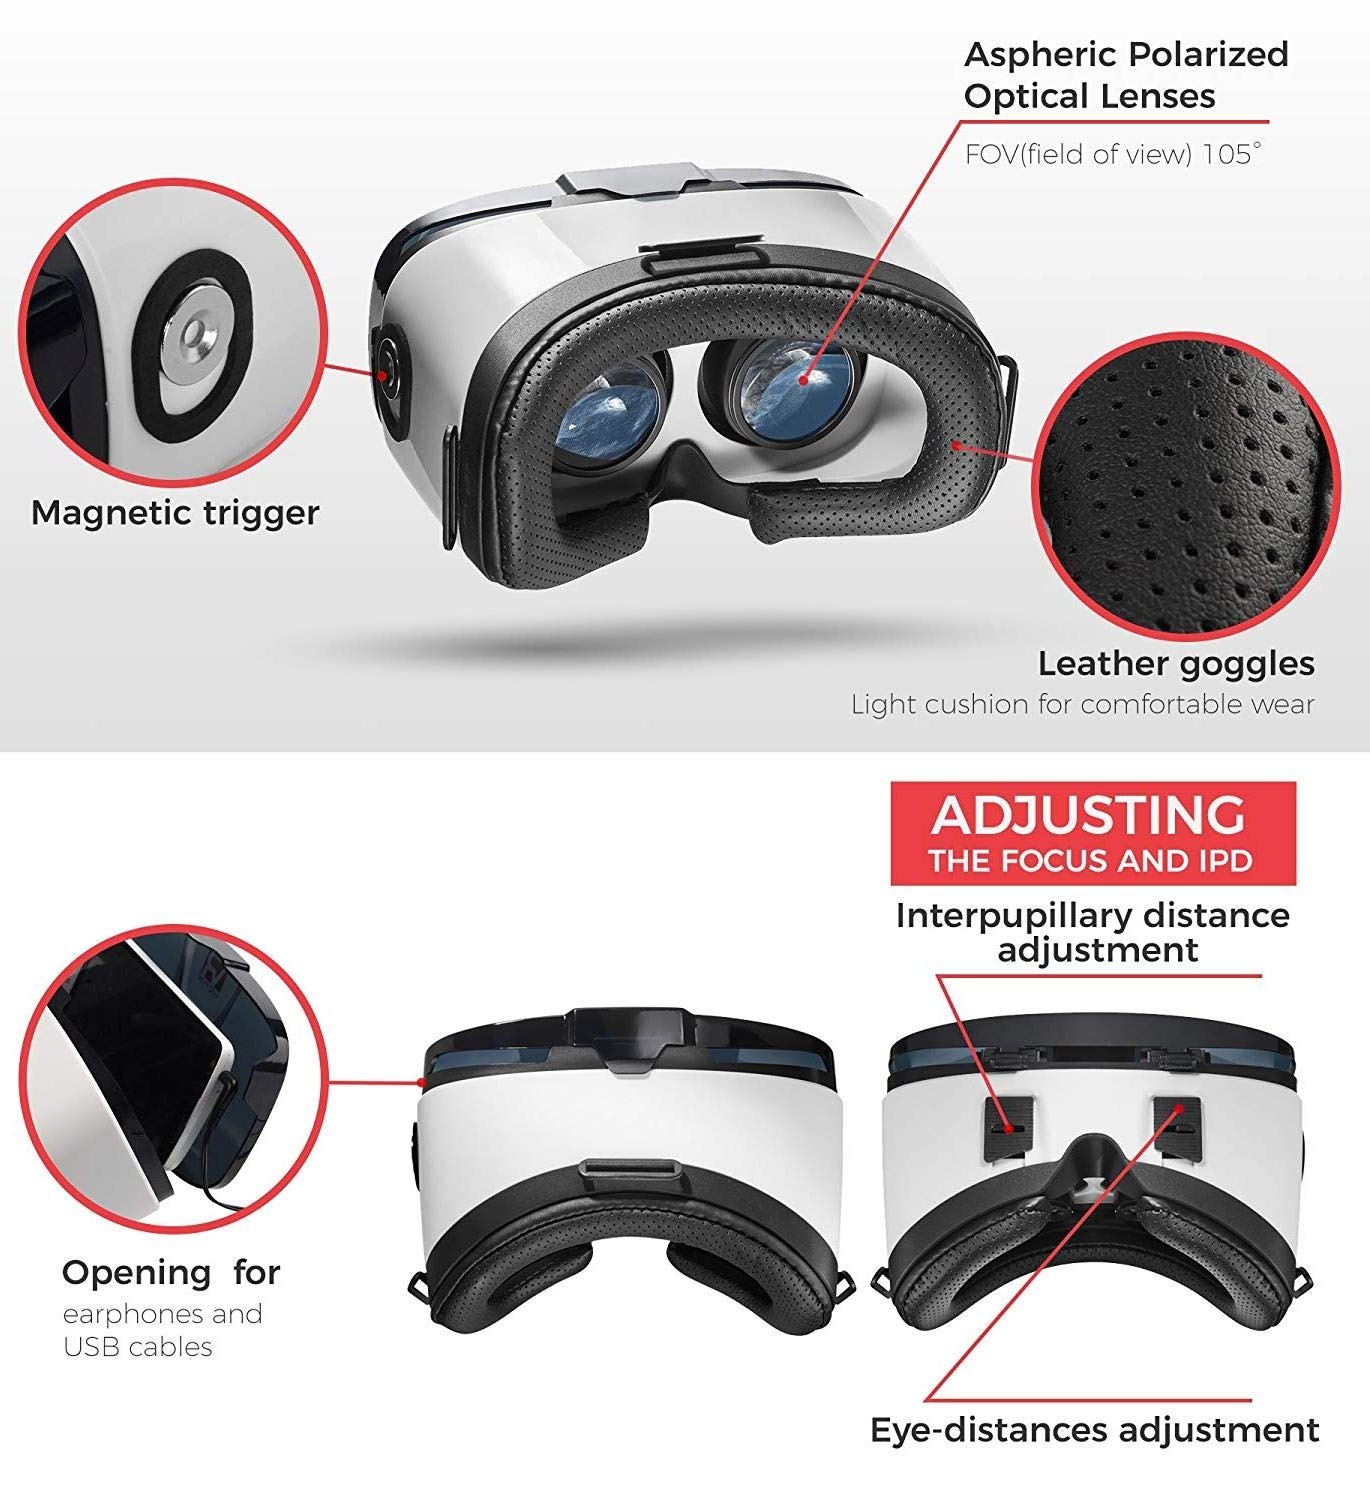 VR Headset - Virtual Reality Goggles by VR WEAR 3D VR Glasses for iPhone 6/7/8/Plus/X & S6/S7/S8/S9/Plus/Note and Other Android Smartphones with 4.5-6.5'' Screens + 2 Stickers by VR WEAR